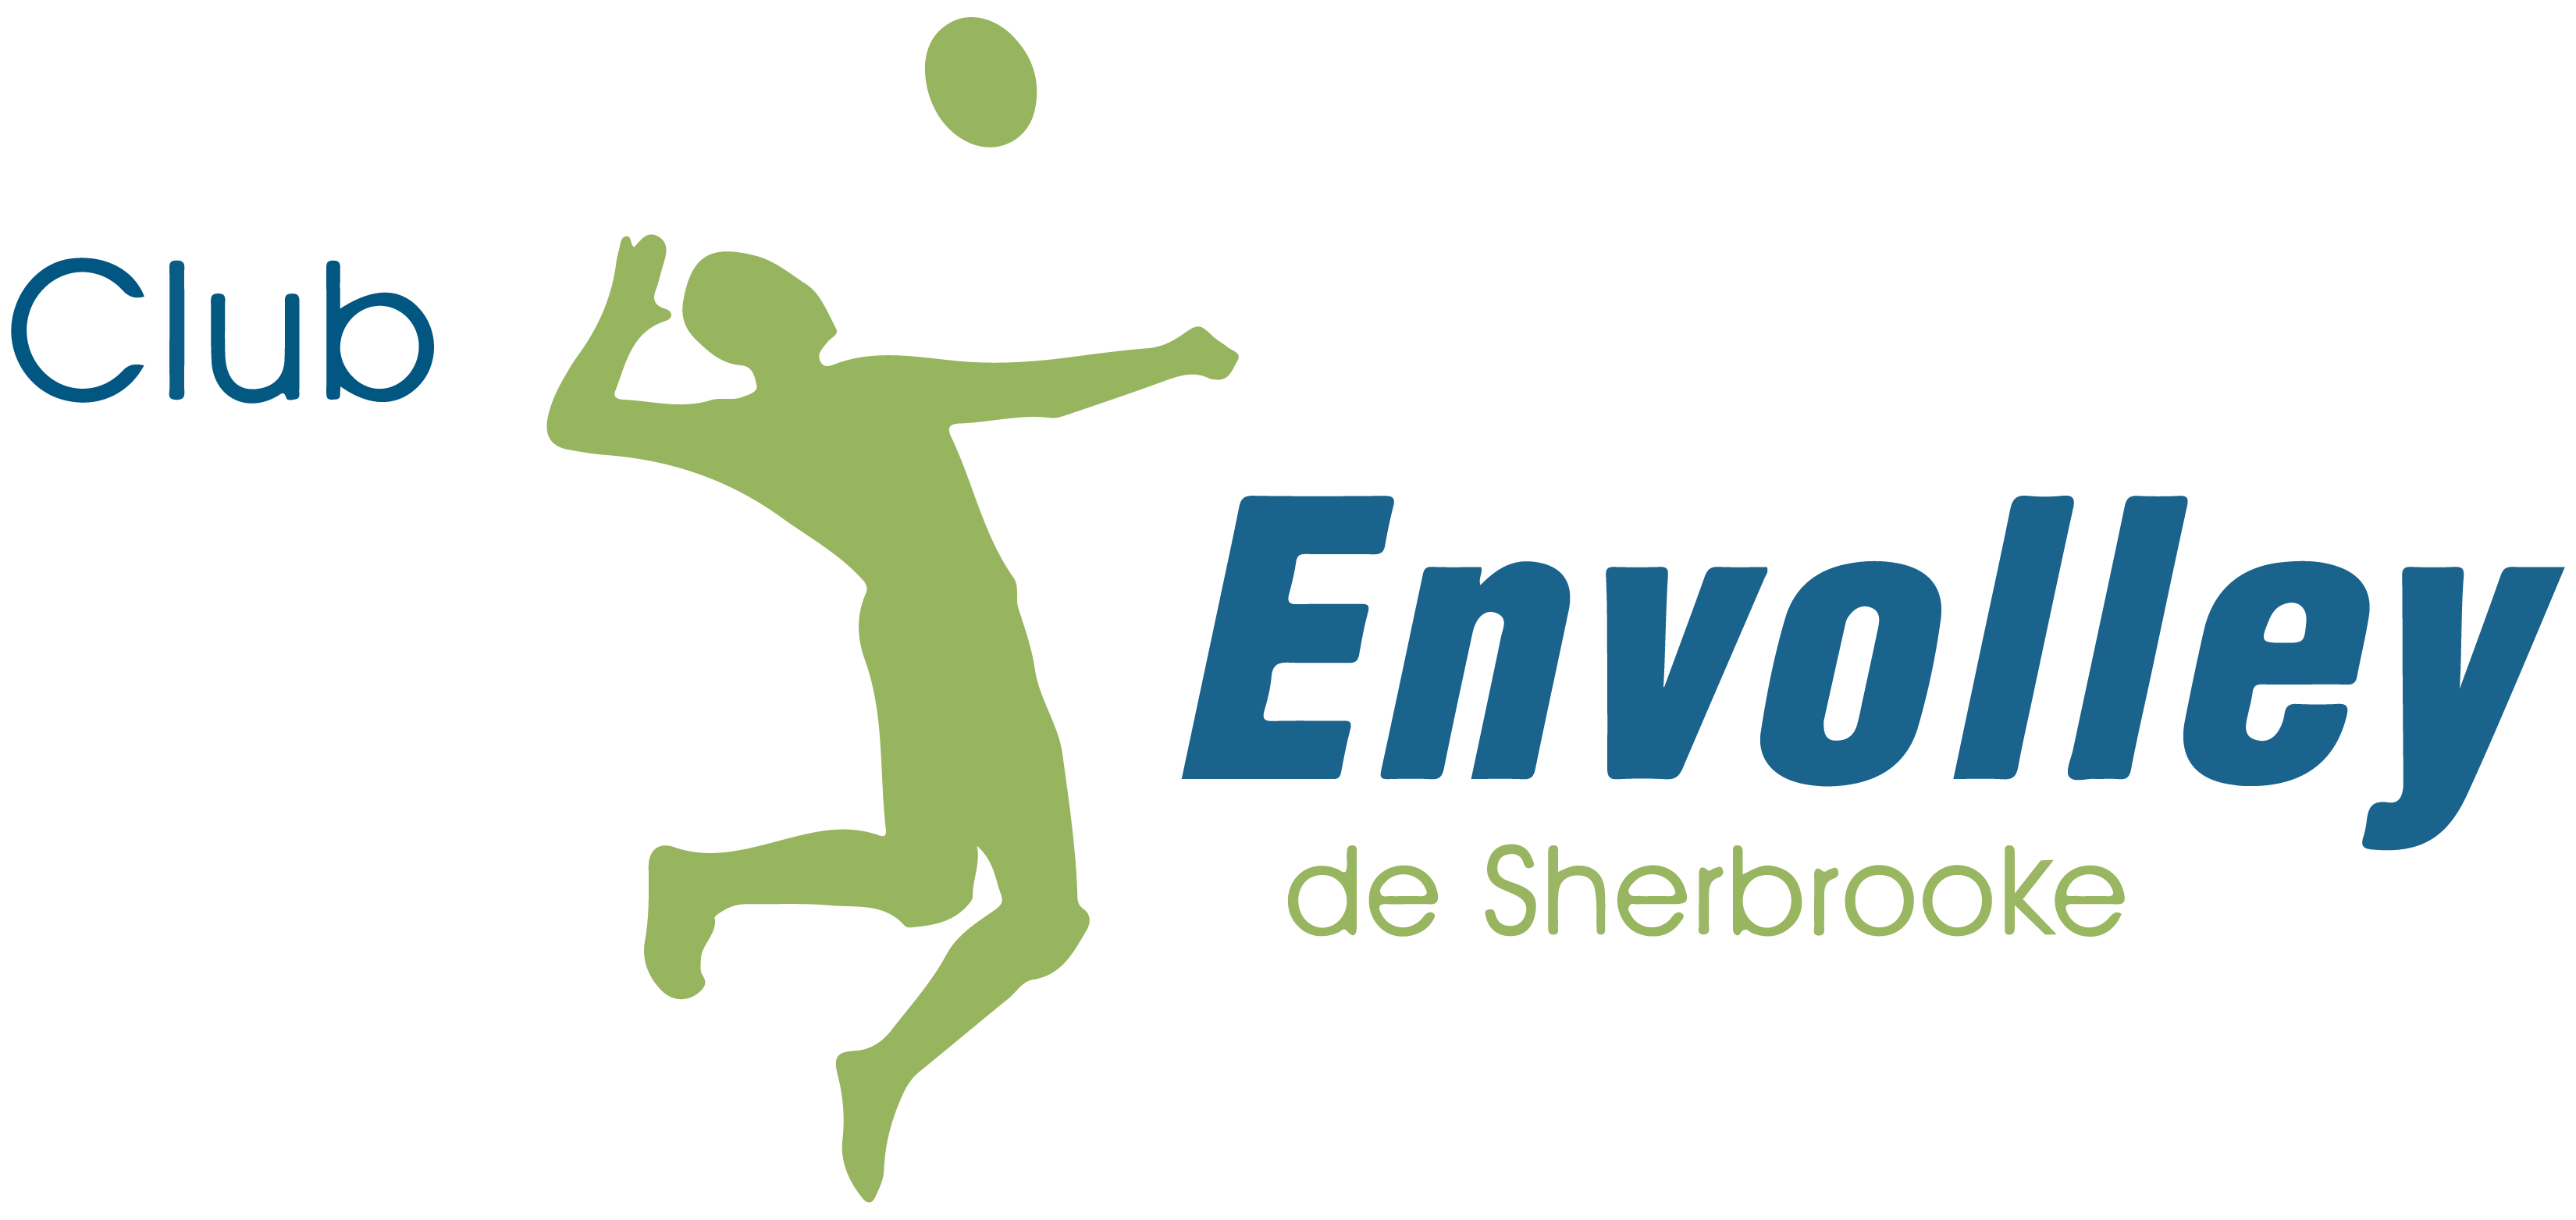 Club Envolley